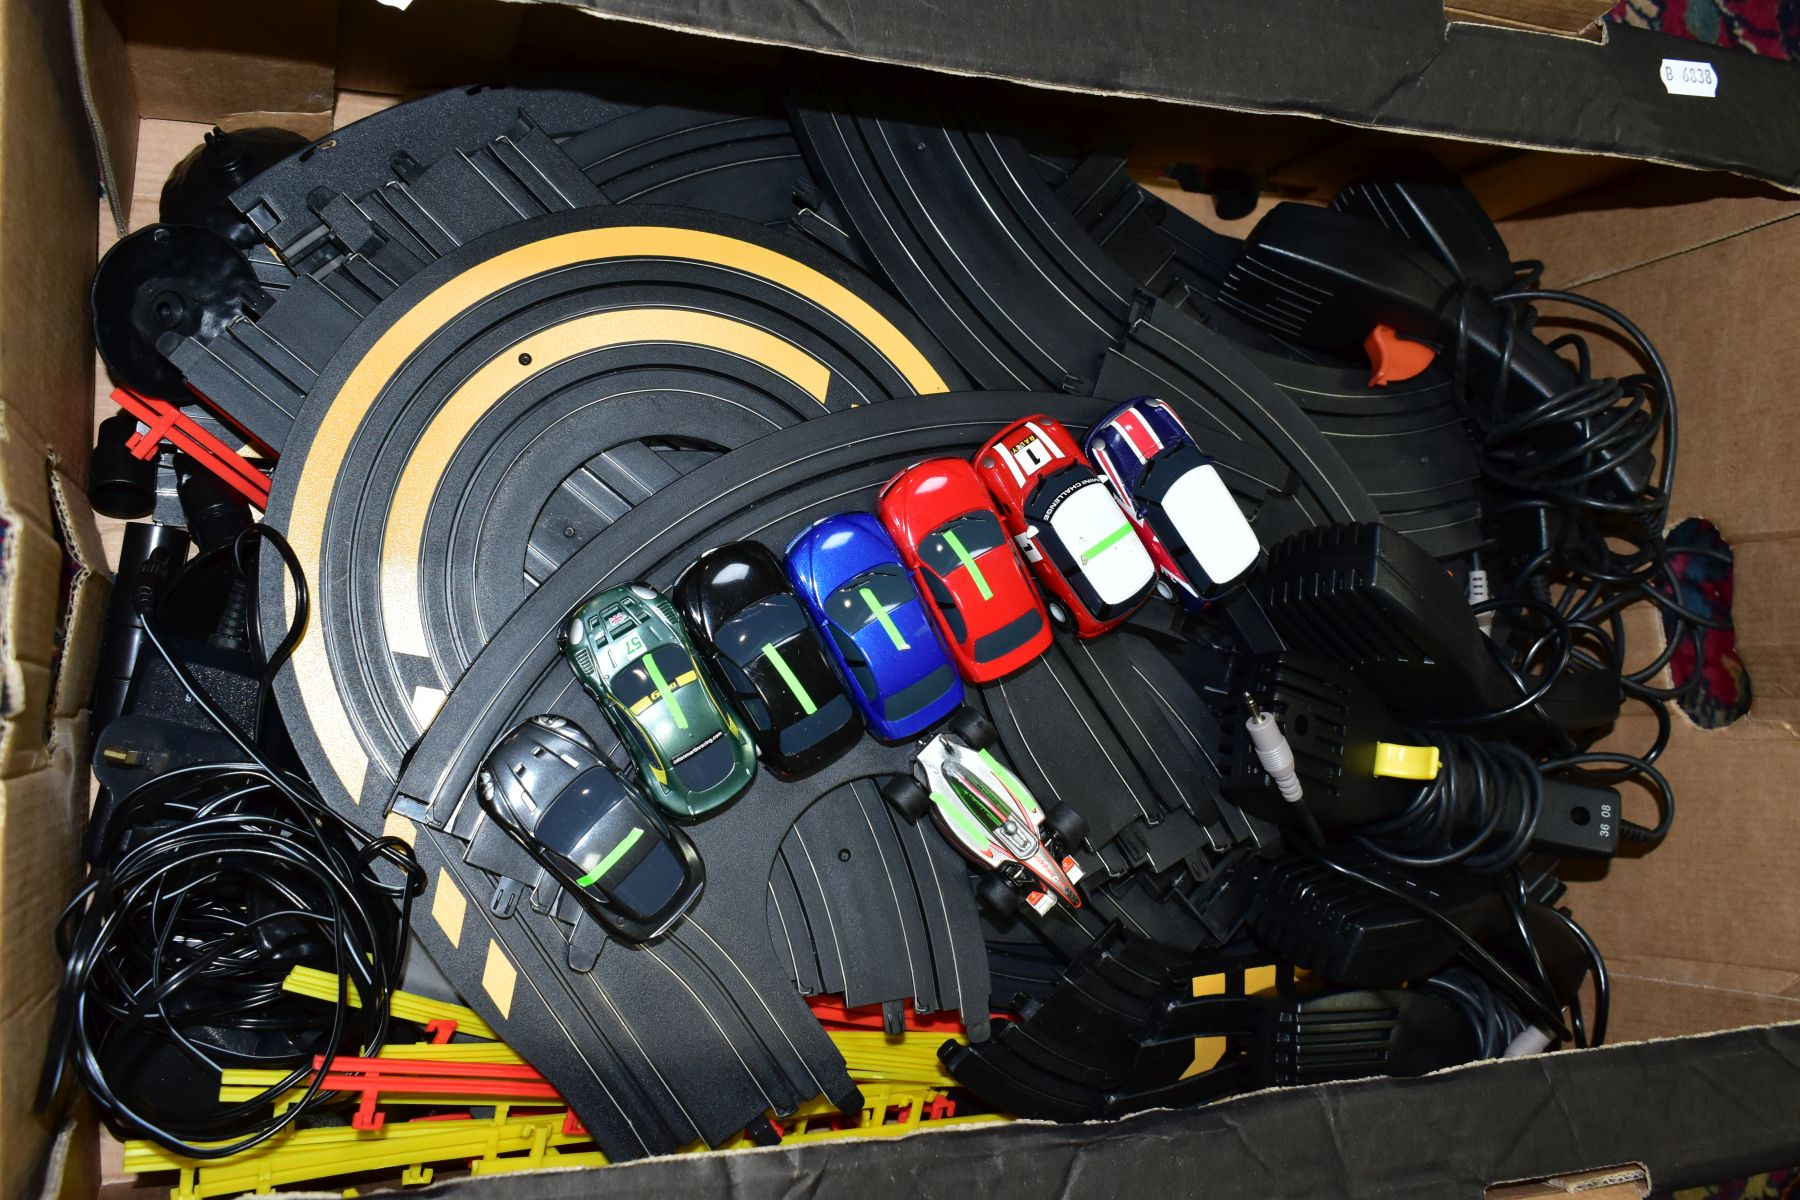 A QUANTITY OF UNBOXED AND ASSORTED HORNBY MICRO SCALEXTRIC, to include assorted cars, track, - Image 5 of 5